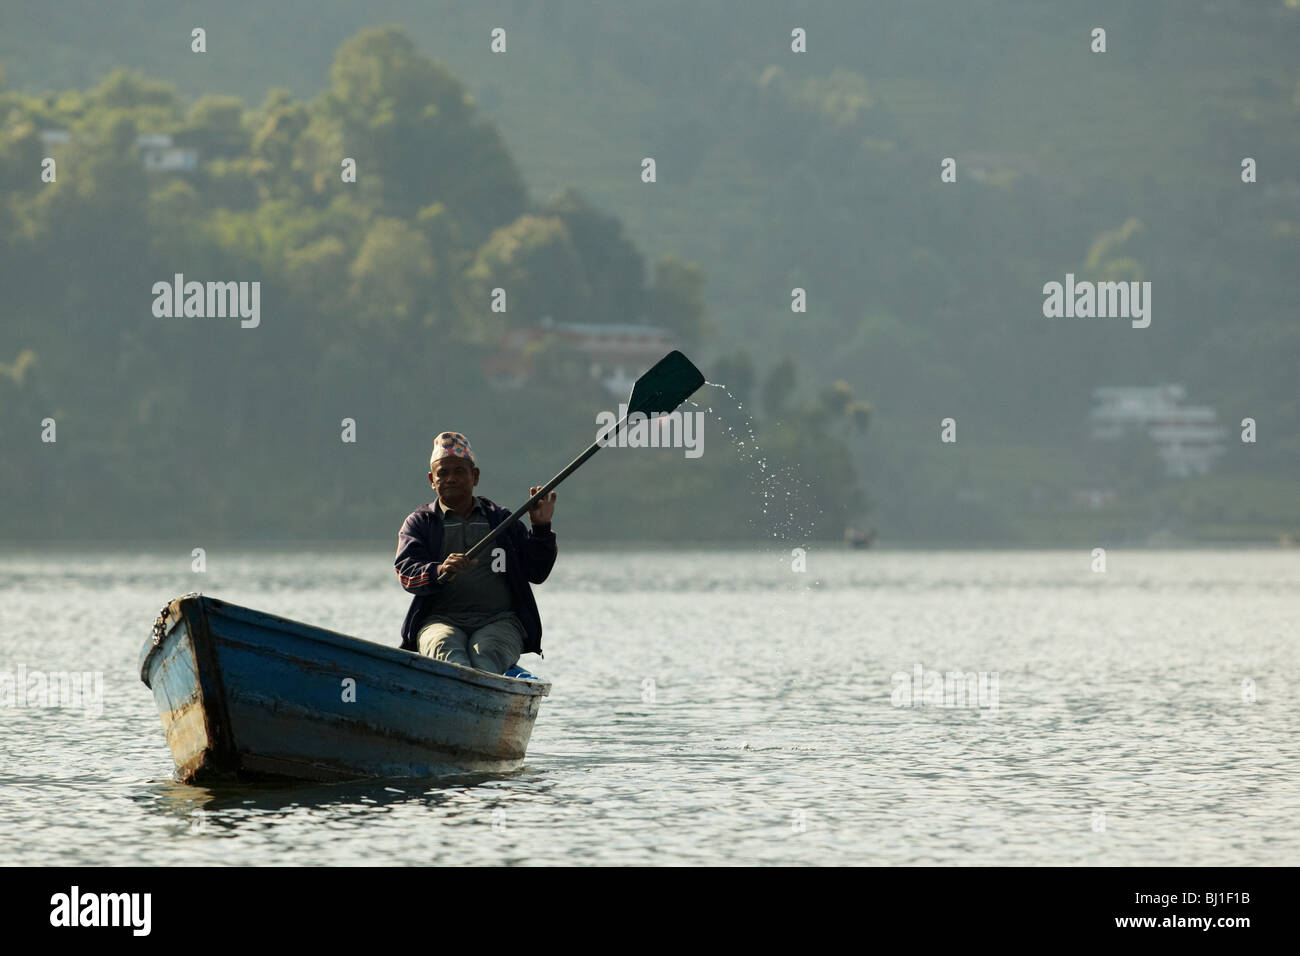 A man rowing in a canoe on Pewha Lake in Pokhara, Nepal on Monday October 26, 2009. - Stock Image